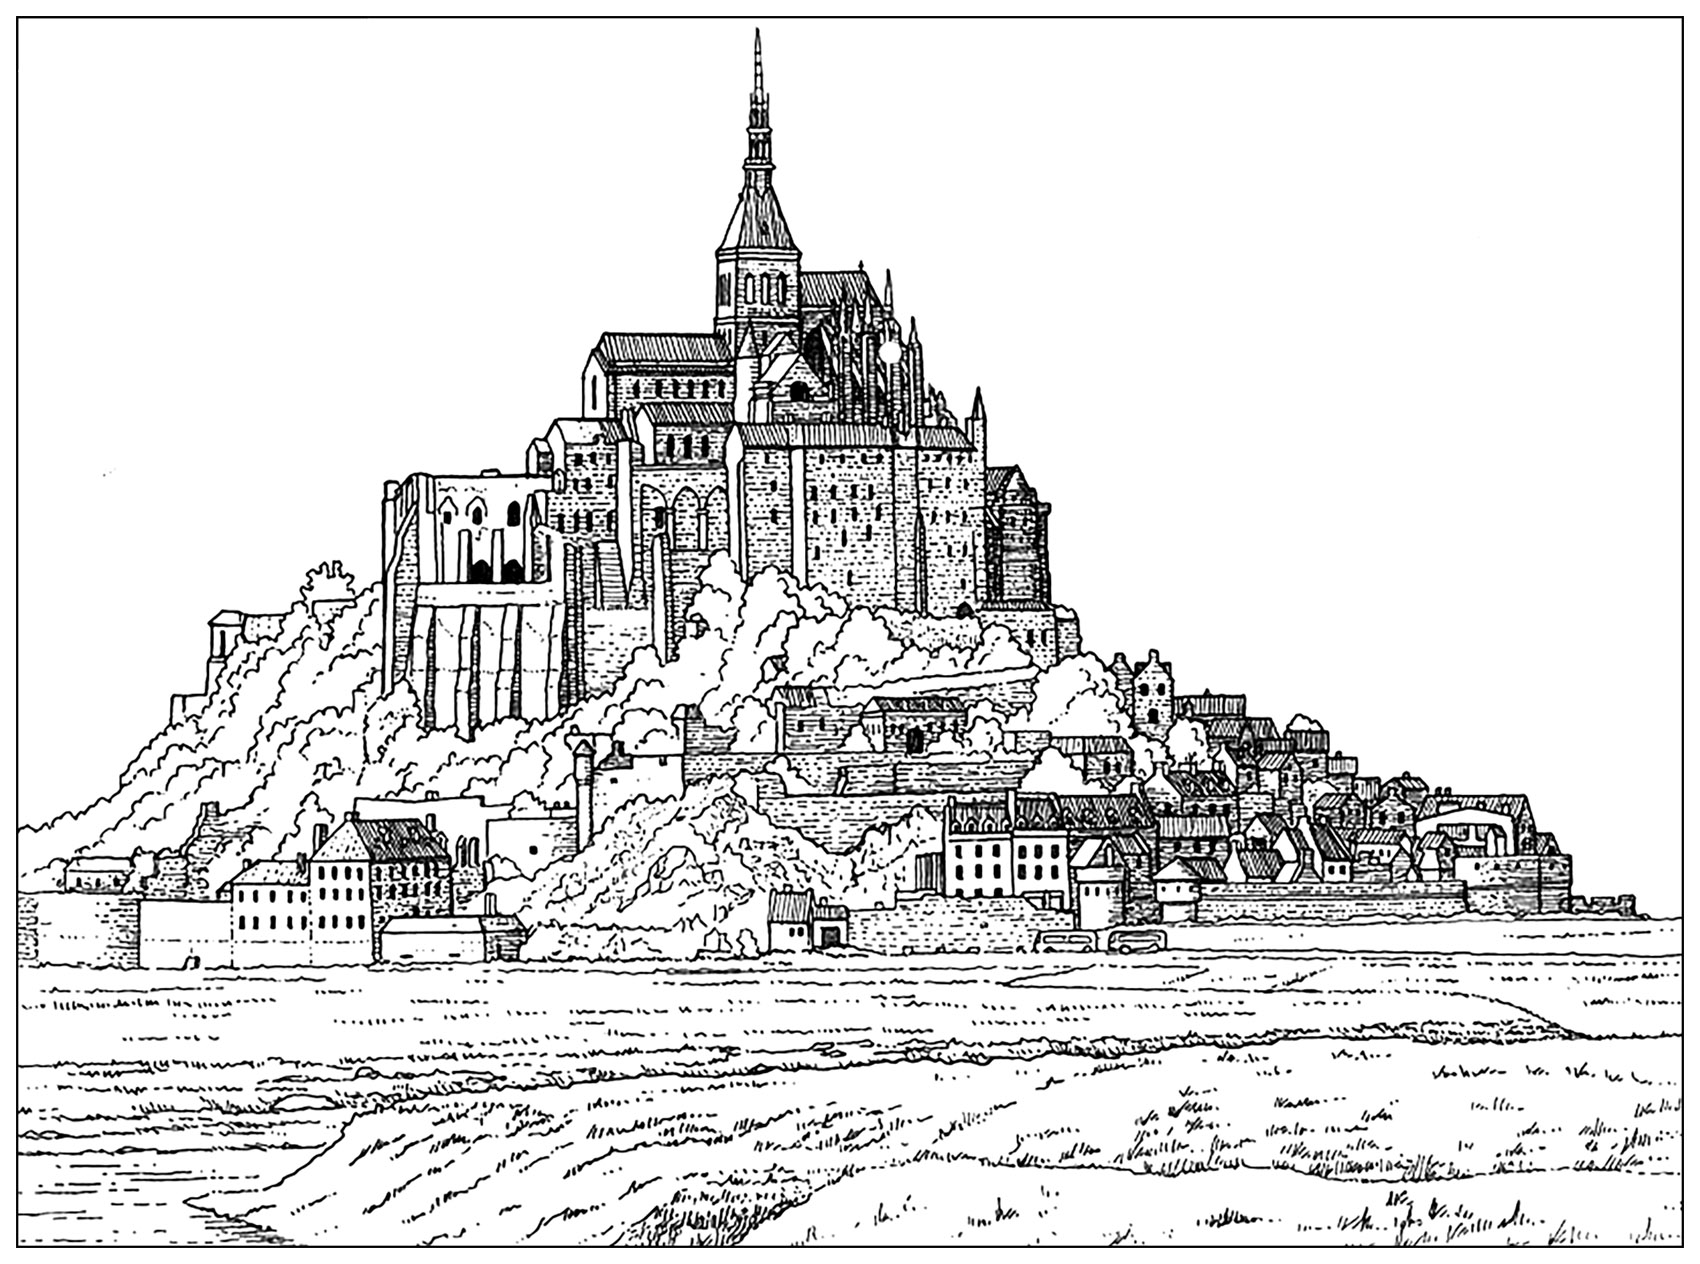 Coloring page of the 'Mont Saint-Michel' (France)